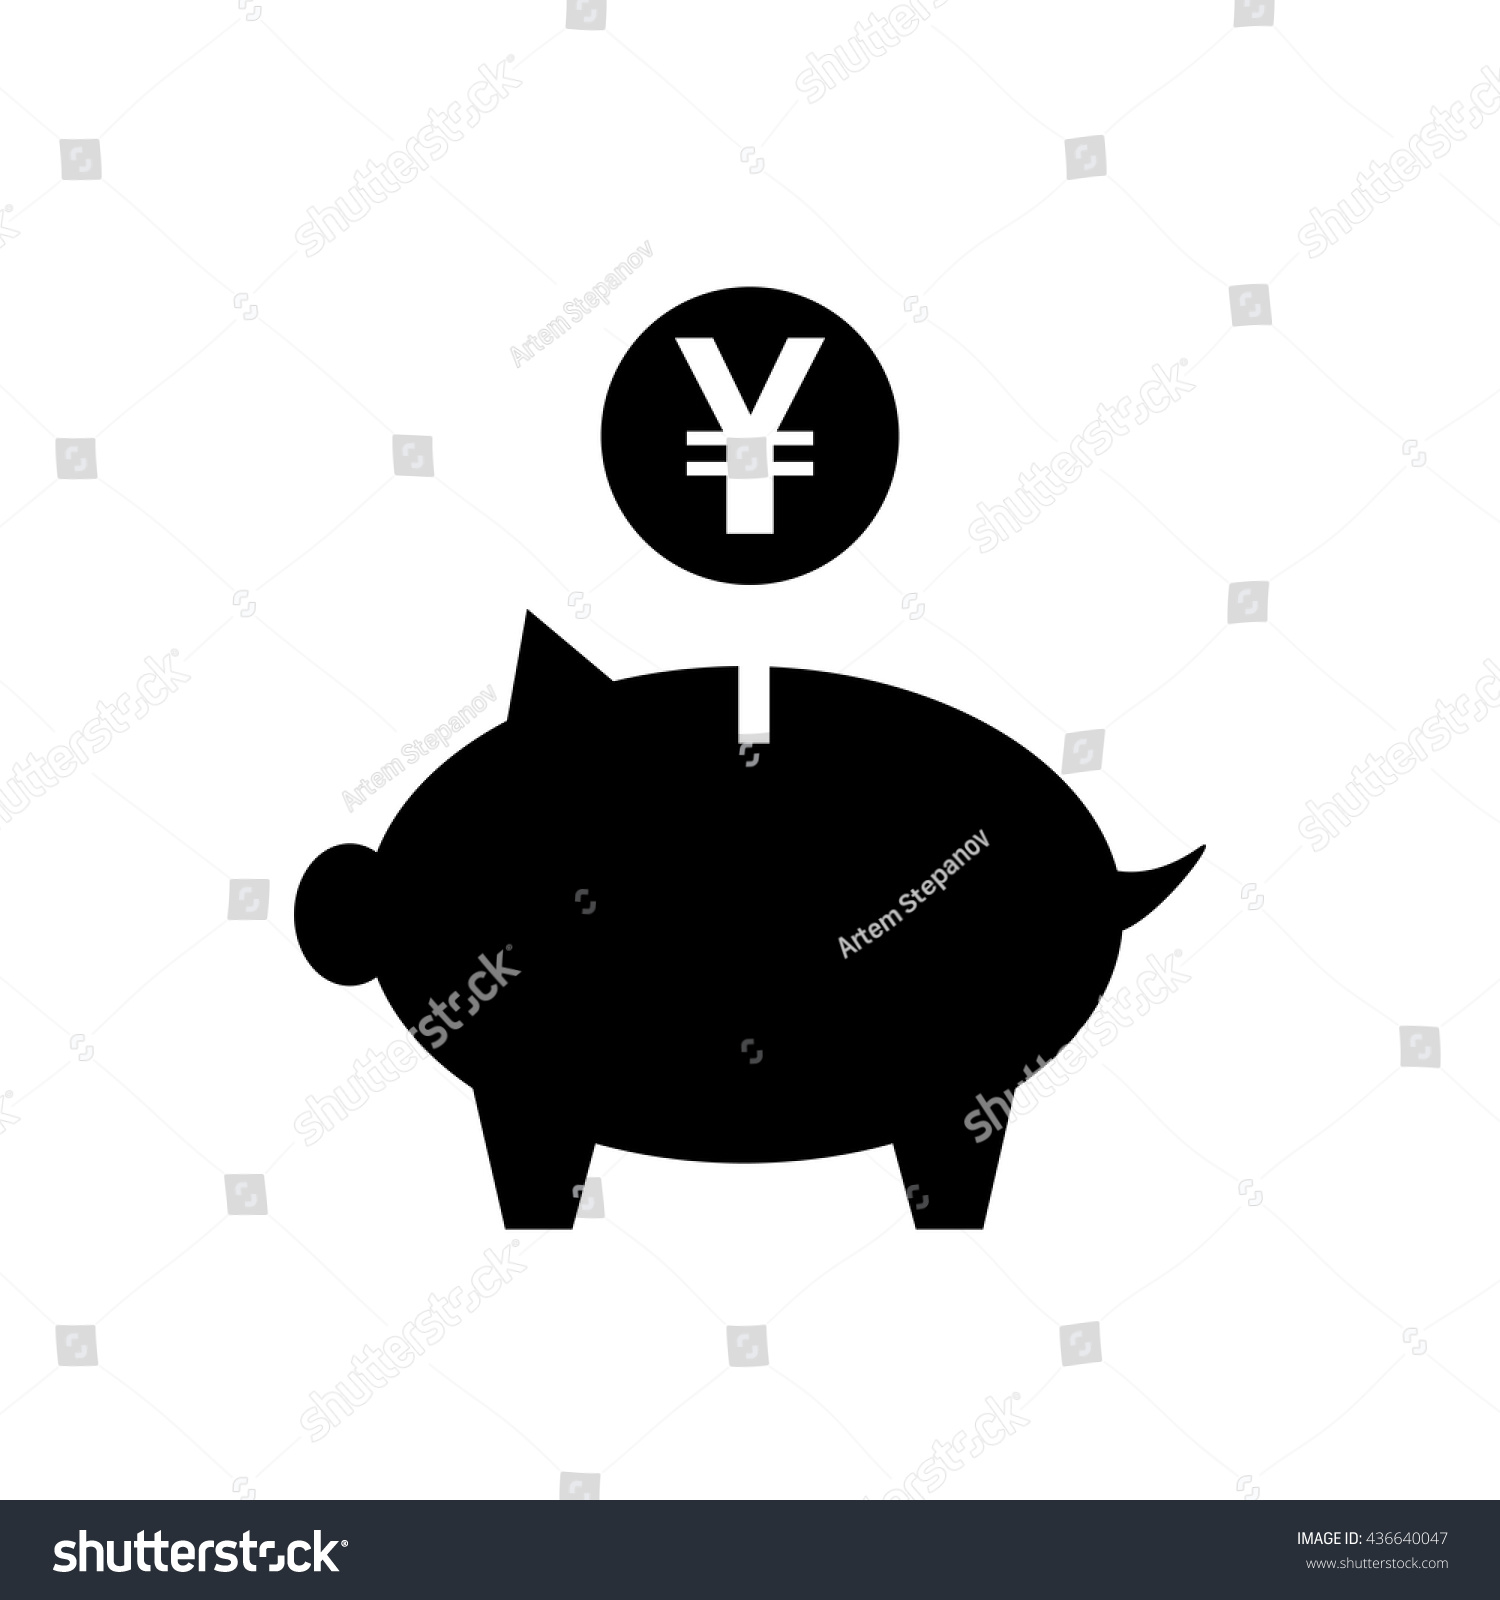 Chinese yen currency symbol view symbol biocorpaavc Image collections